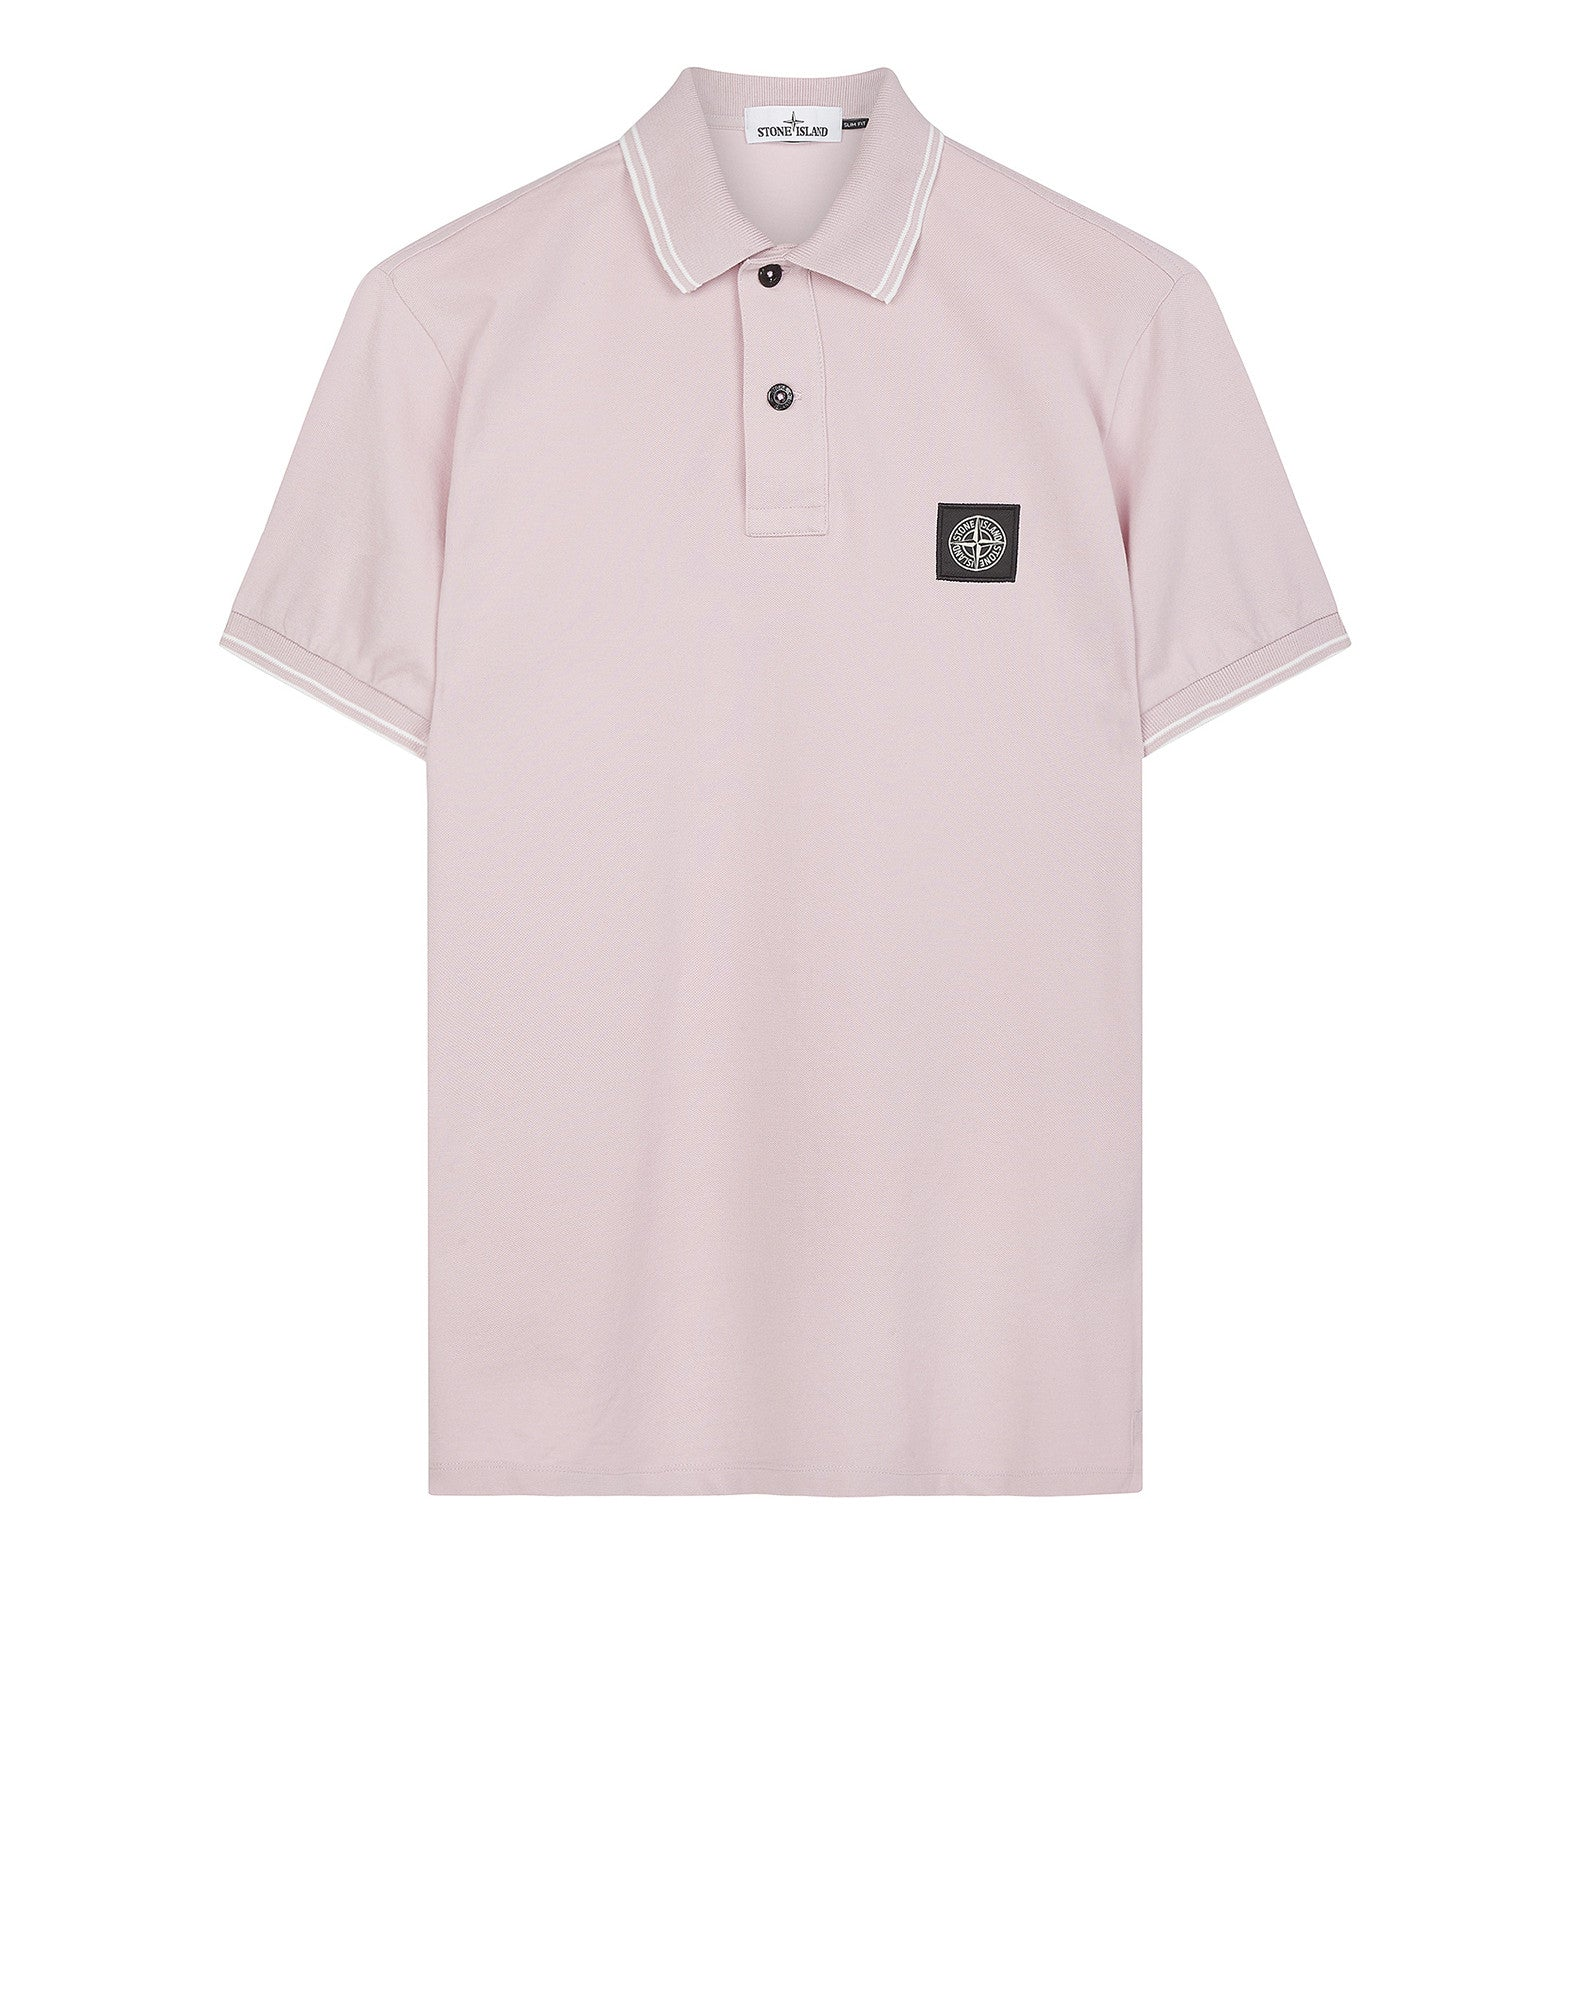 22S18 Patch Program Polo Shirt in Pink